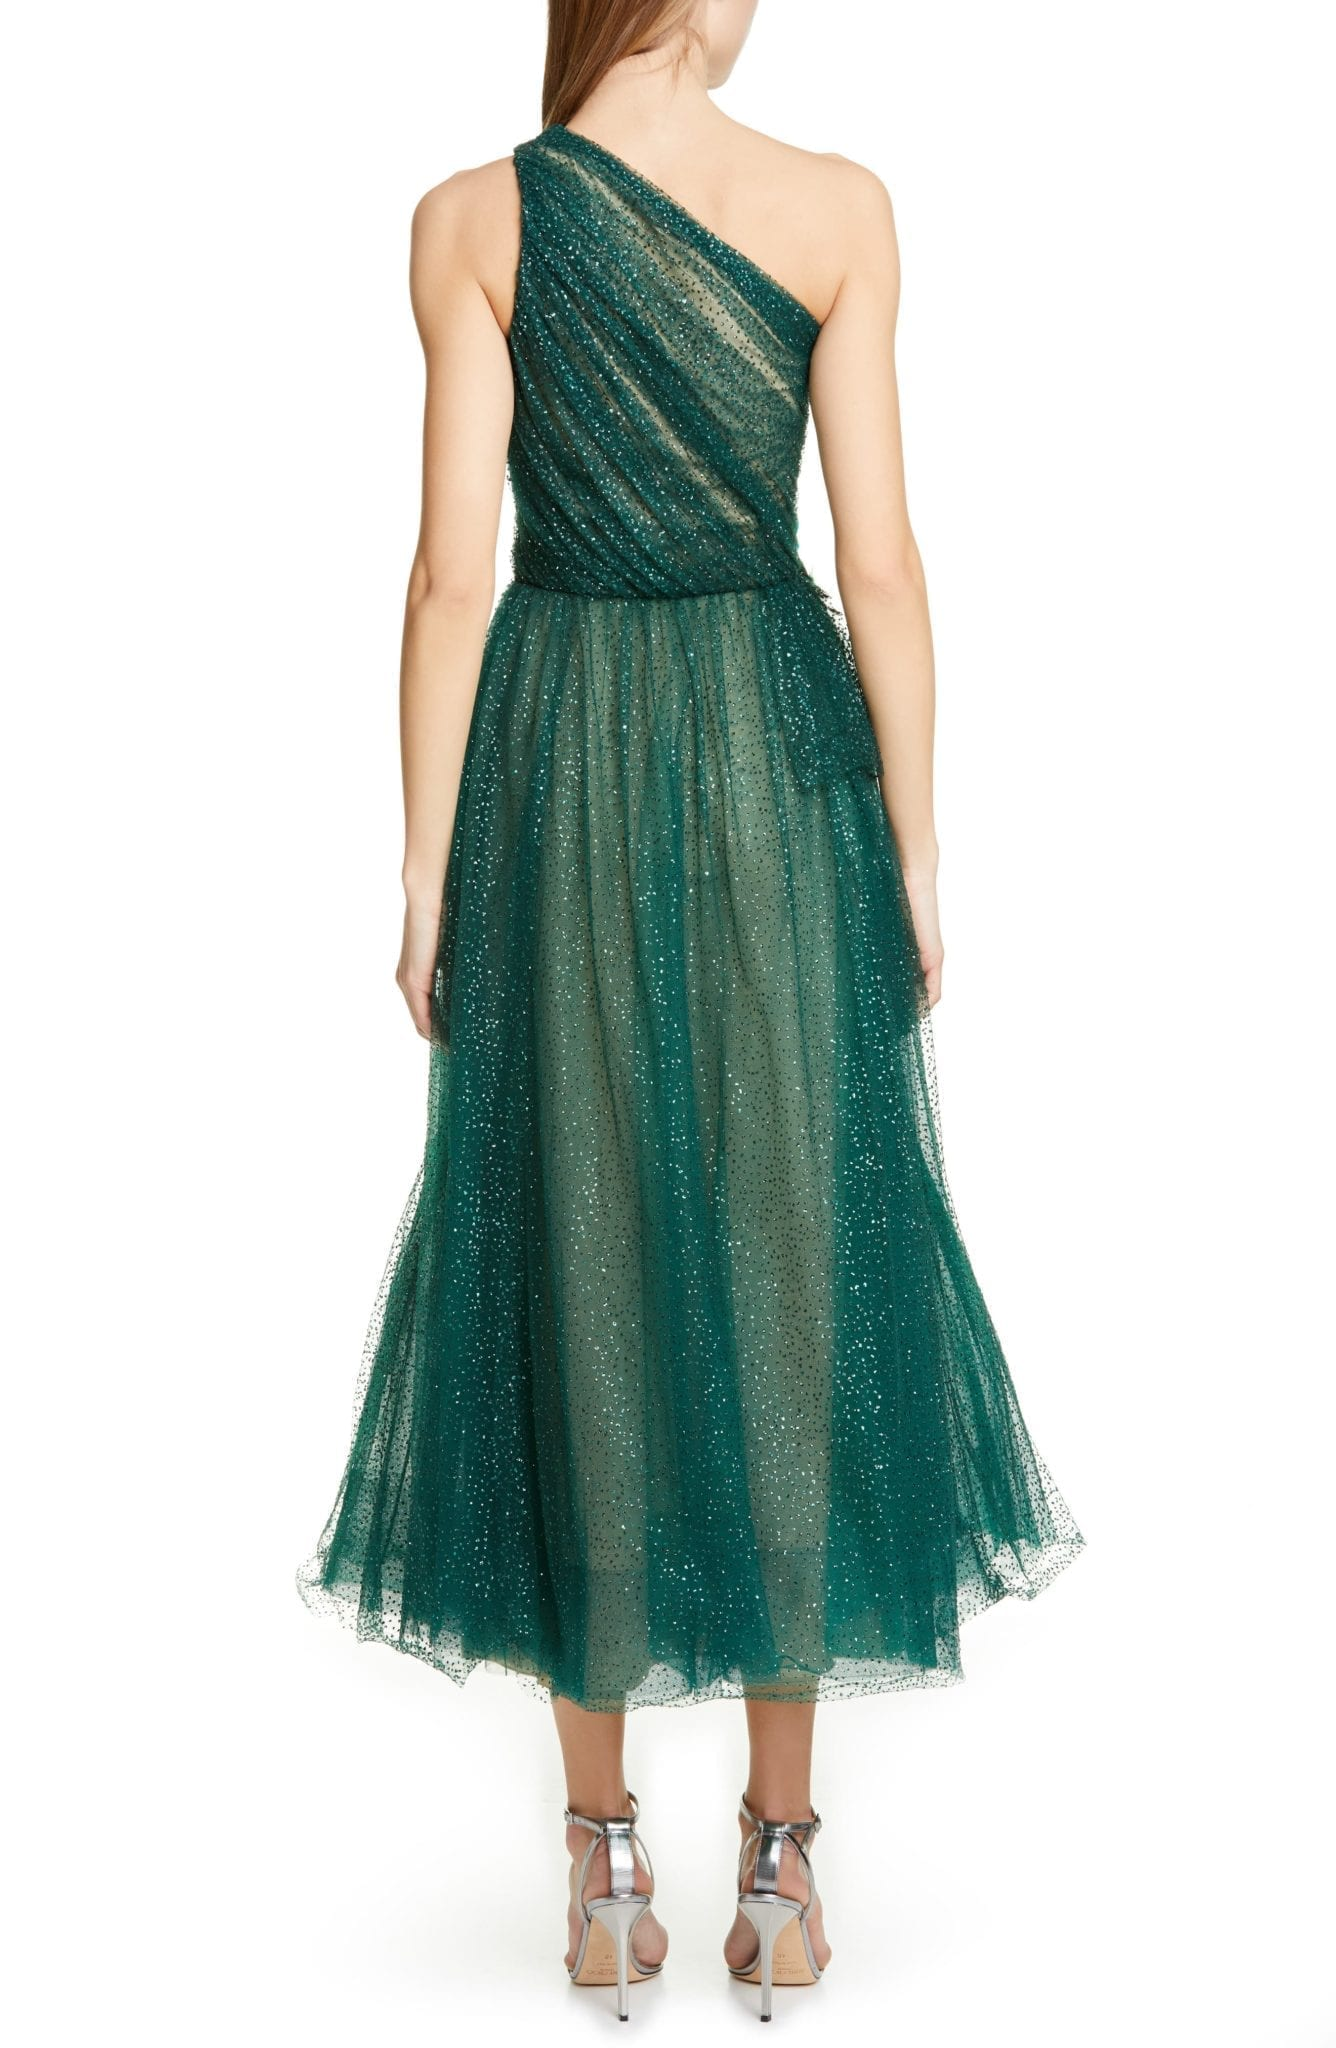 cecfe361 MARCHESA NOTTE Glitter Tulle One-Shoulder Midi Green Dress - We ...